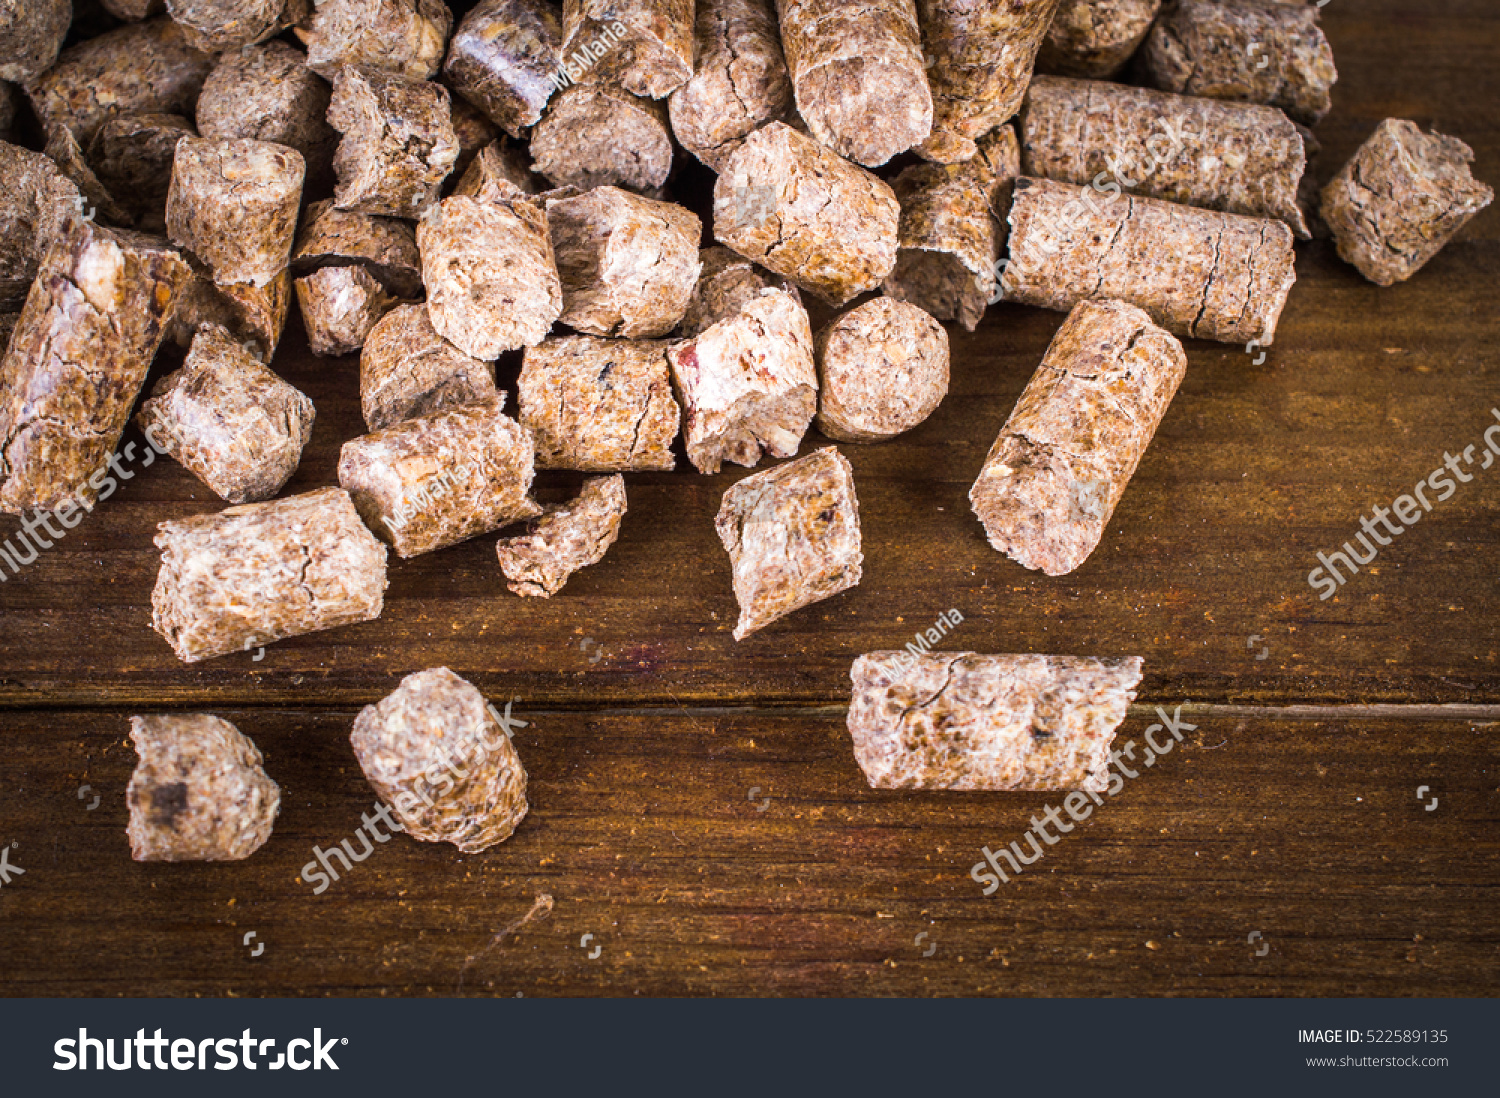 Wood pellets on wooden background stock photo